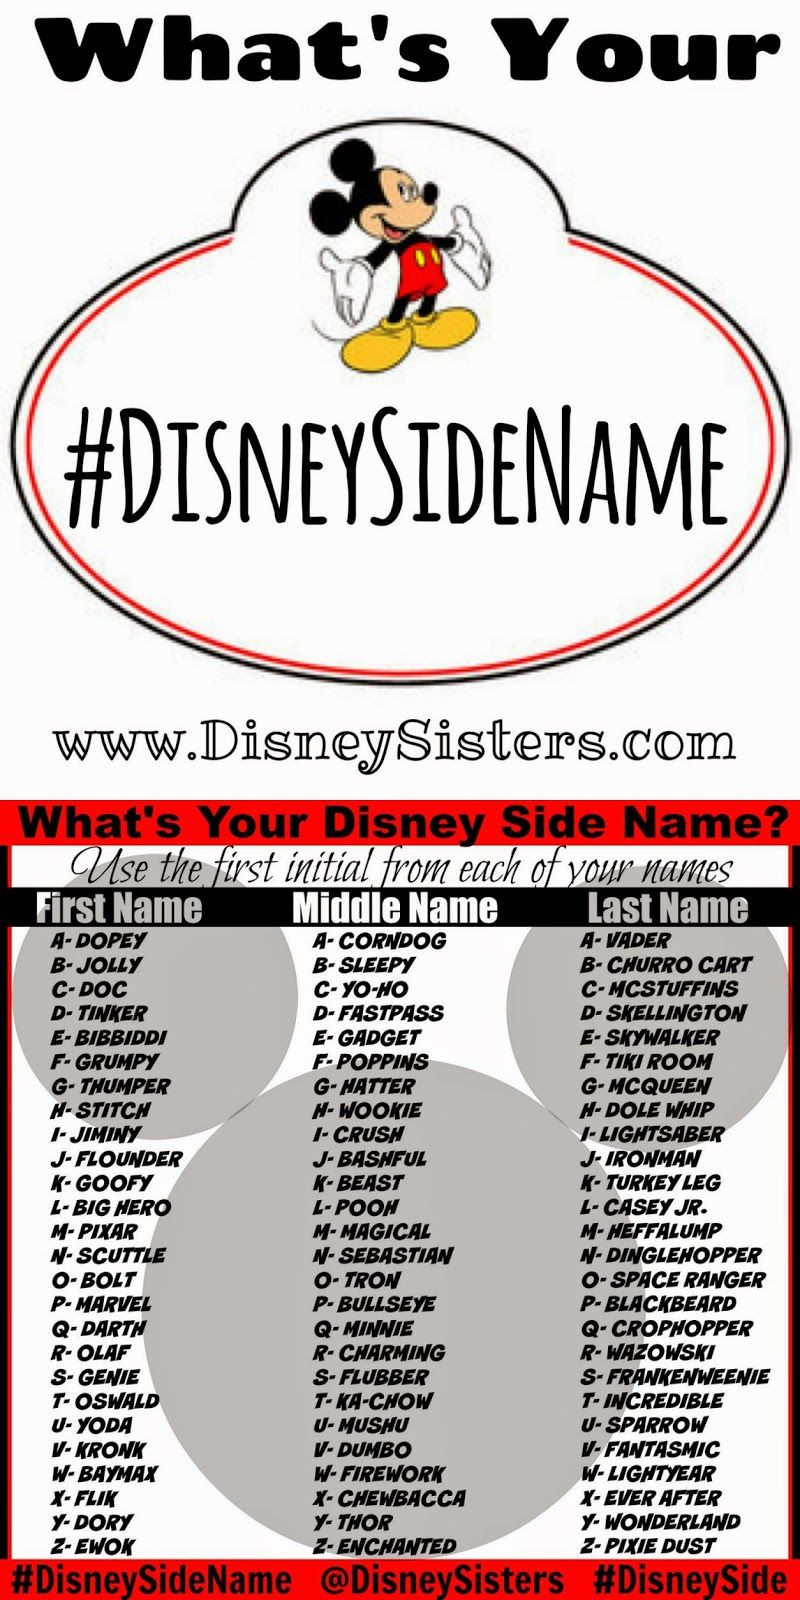 What S Your Disney Side Name We Ve Got The Easy Way To Magically Transform Your Name Into Your Disney Side Name Great Activity For Dis D I S N E Y Disne